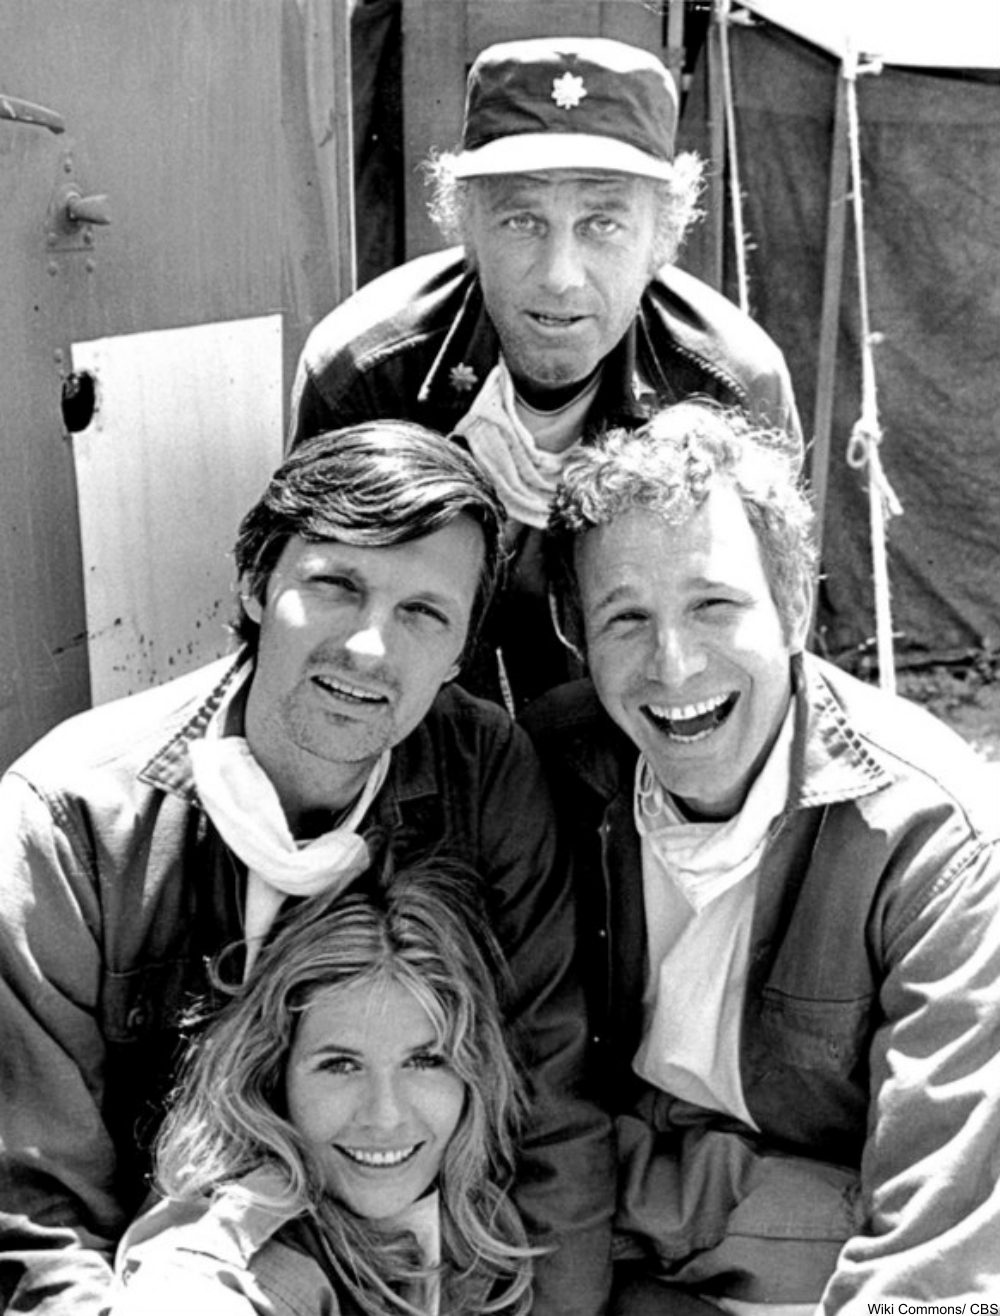 4 cast members from the TV show M*A*S*H